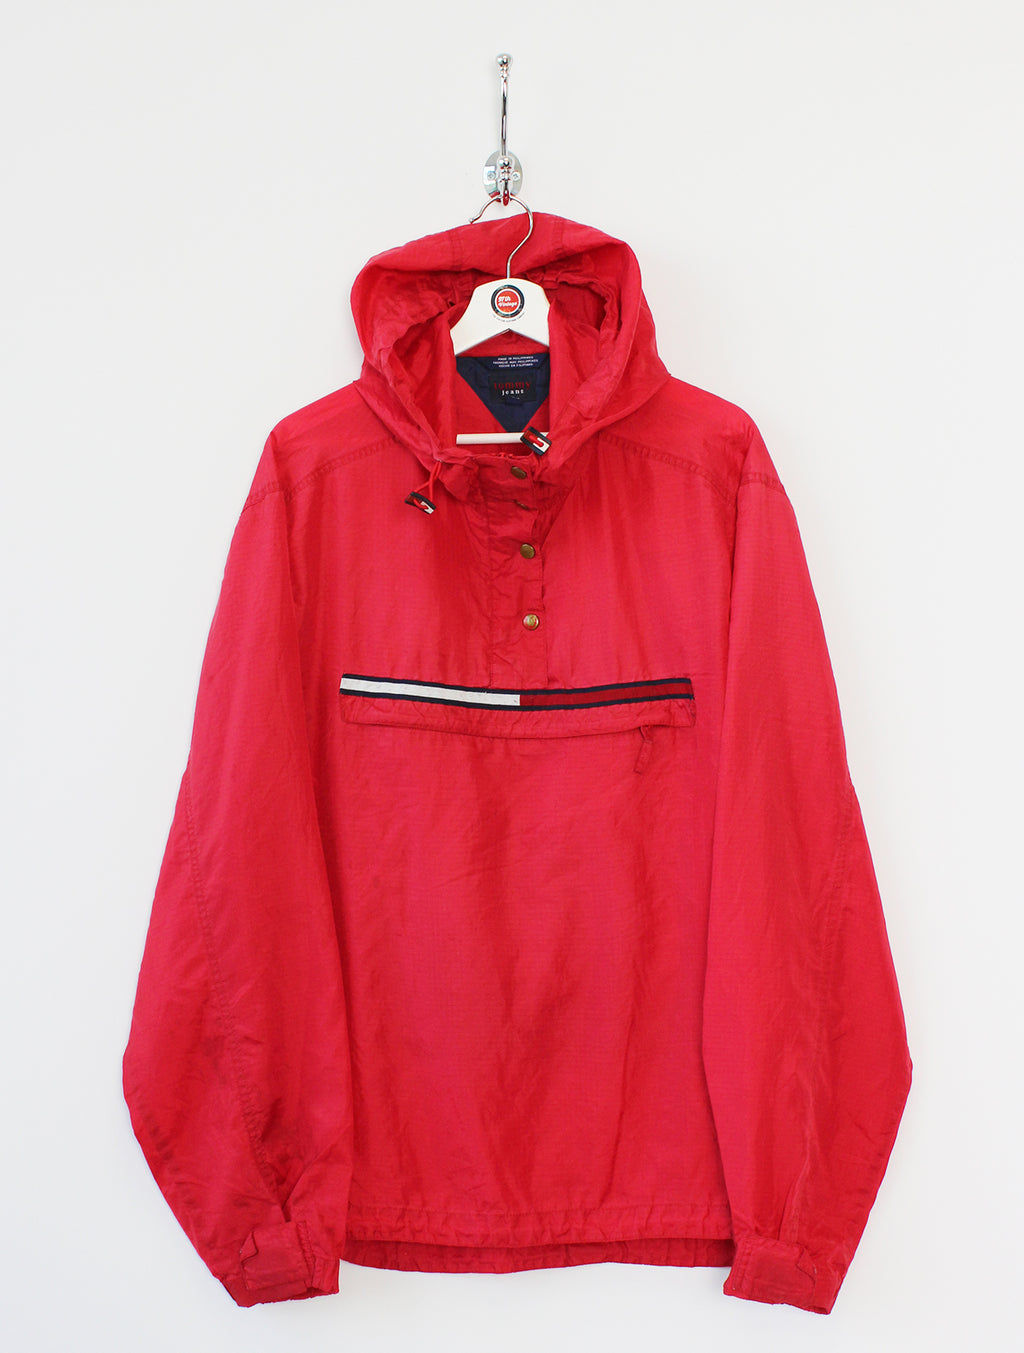 Tommy Hilfiger Windbreaker (XL)